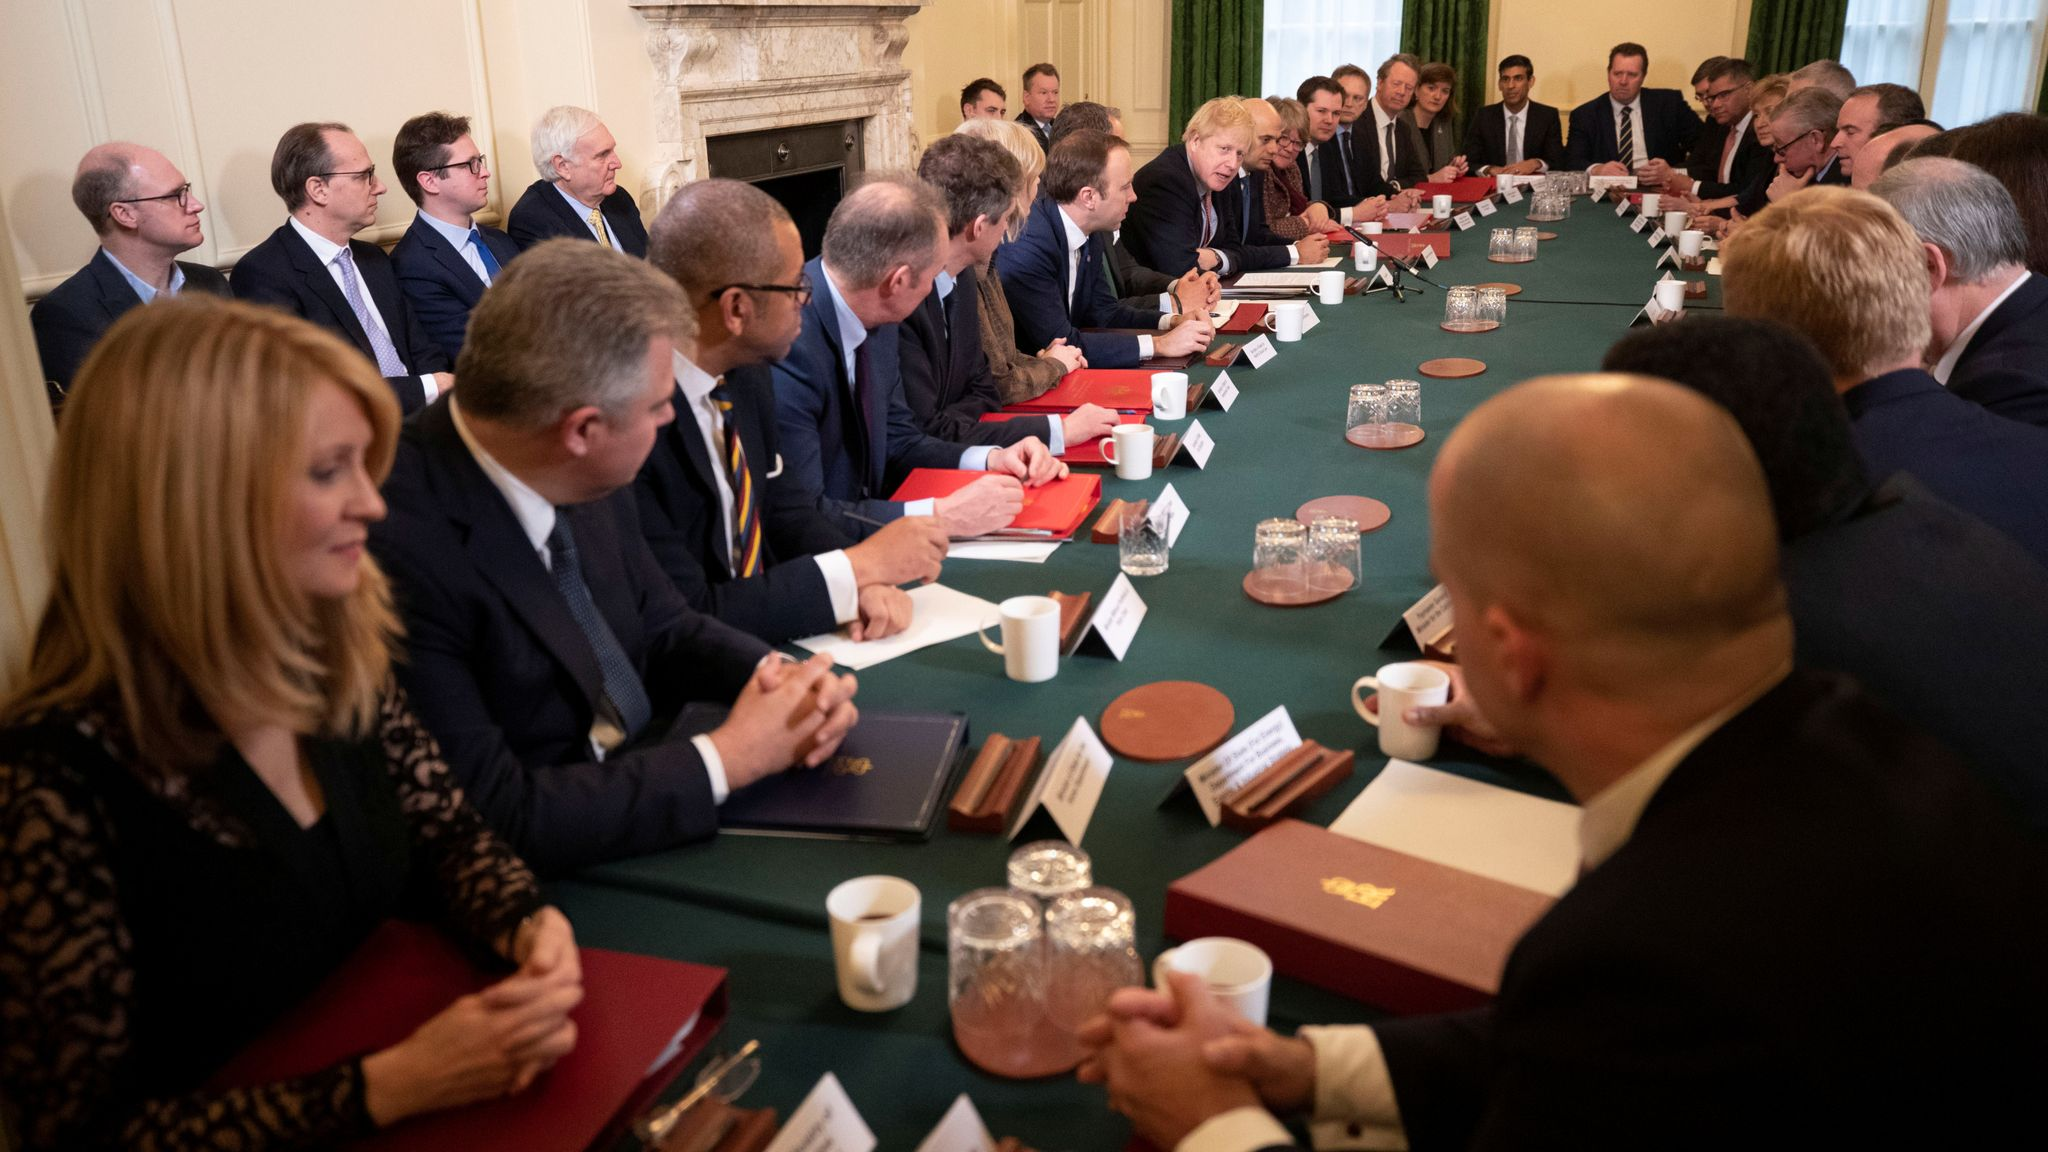 Government reshuffle: Ministers warned over 'showboating' as shake-up looms